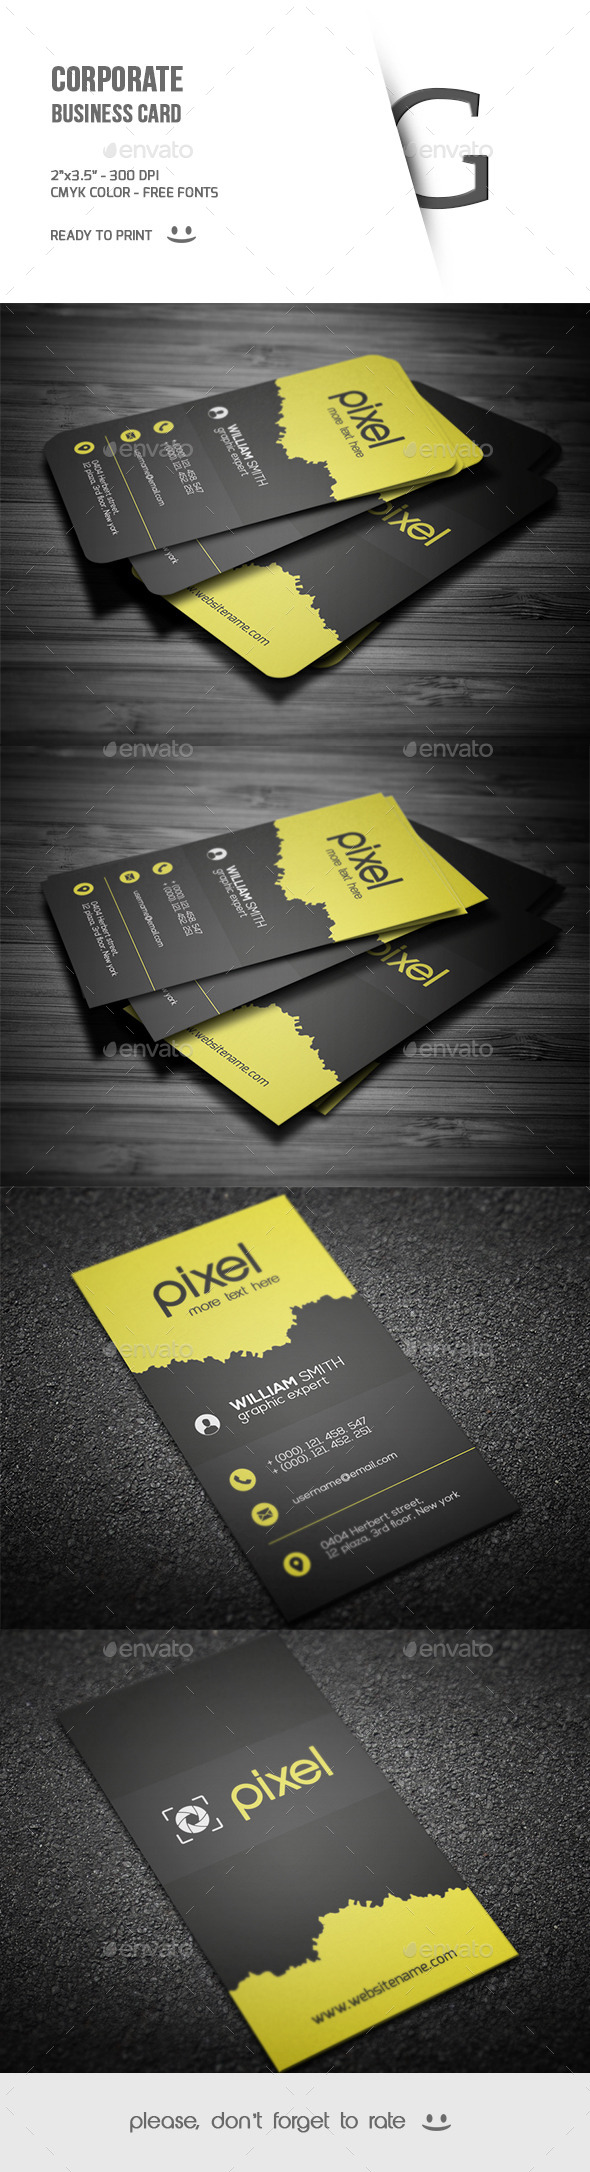 GraphicRiver Corporate Business Card 9635294